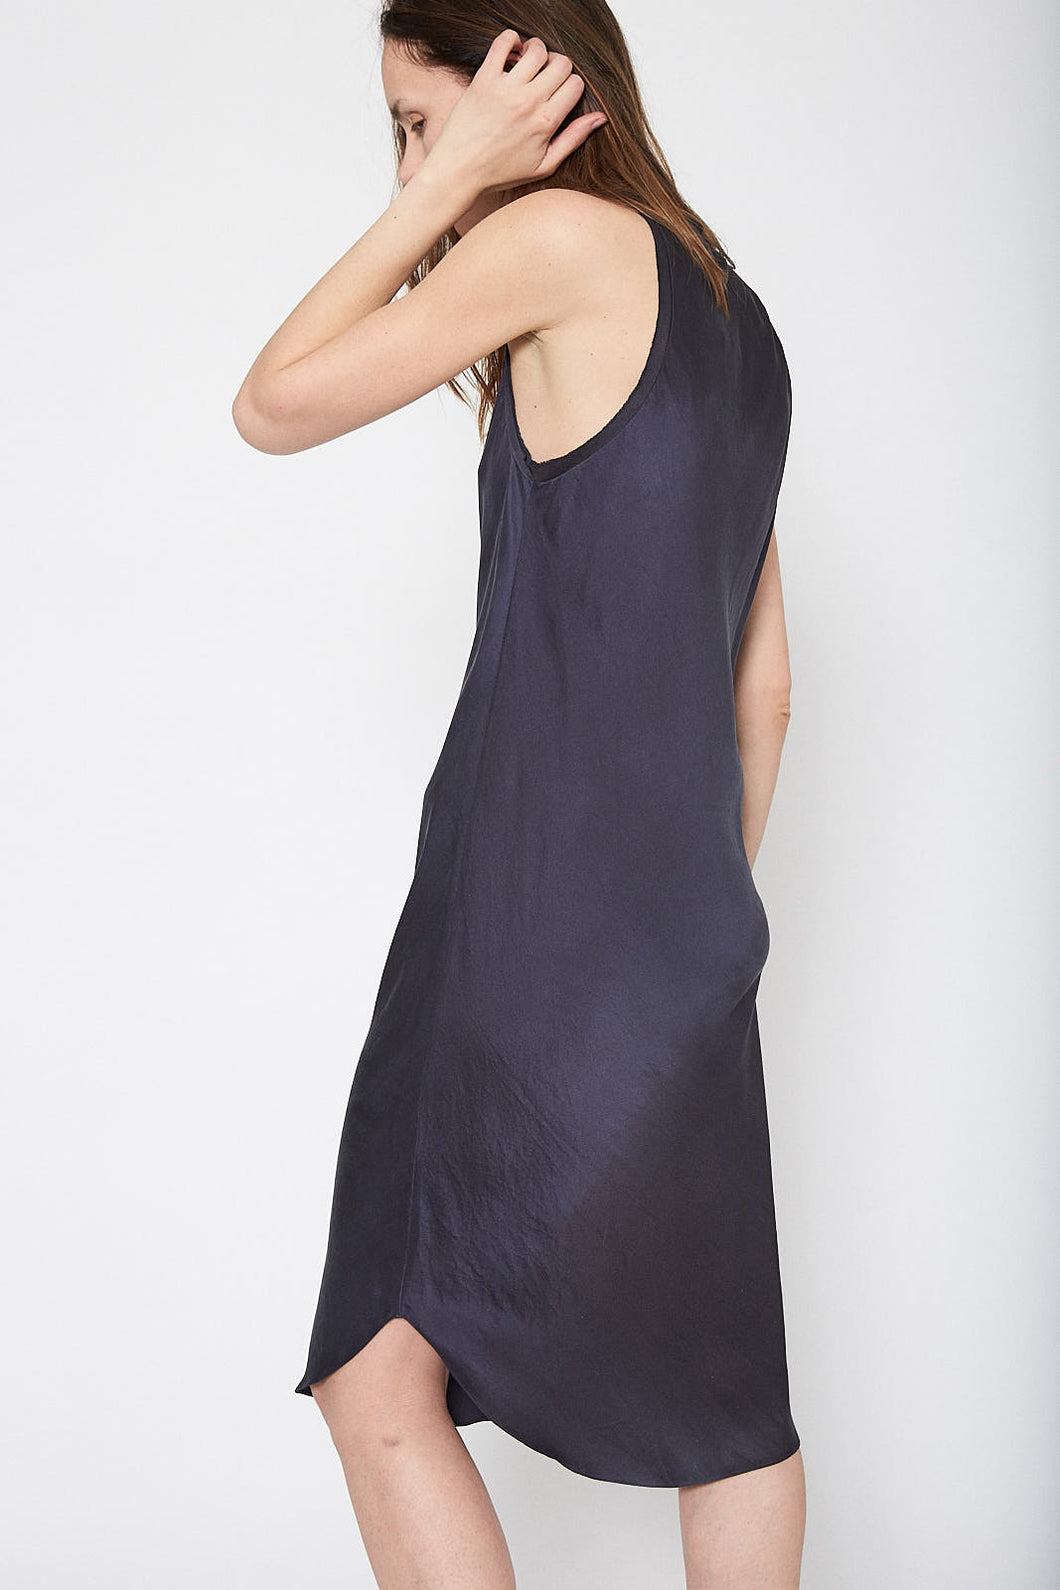 KES Elongated Minimal Tank Dress